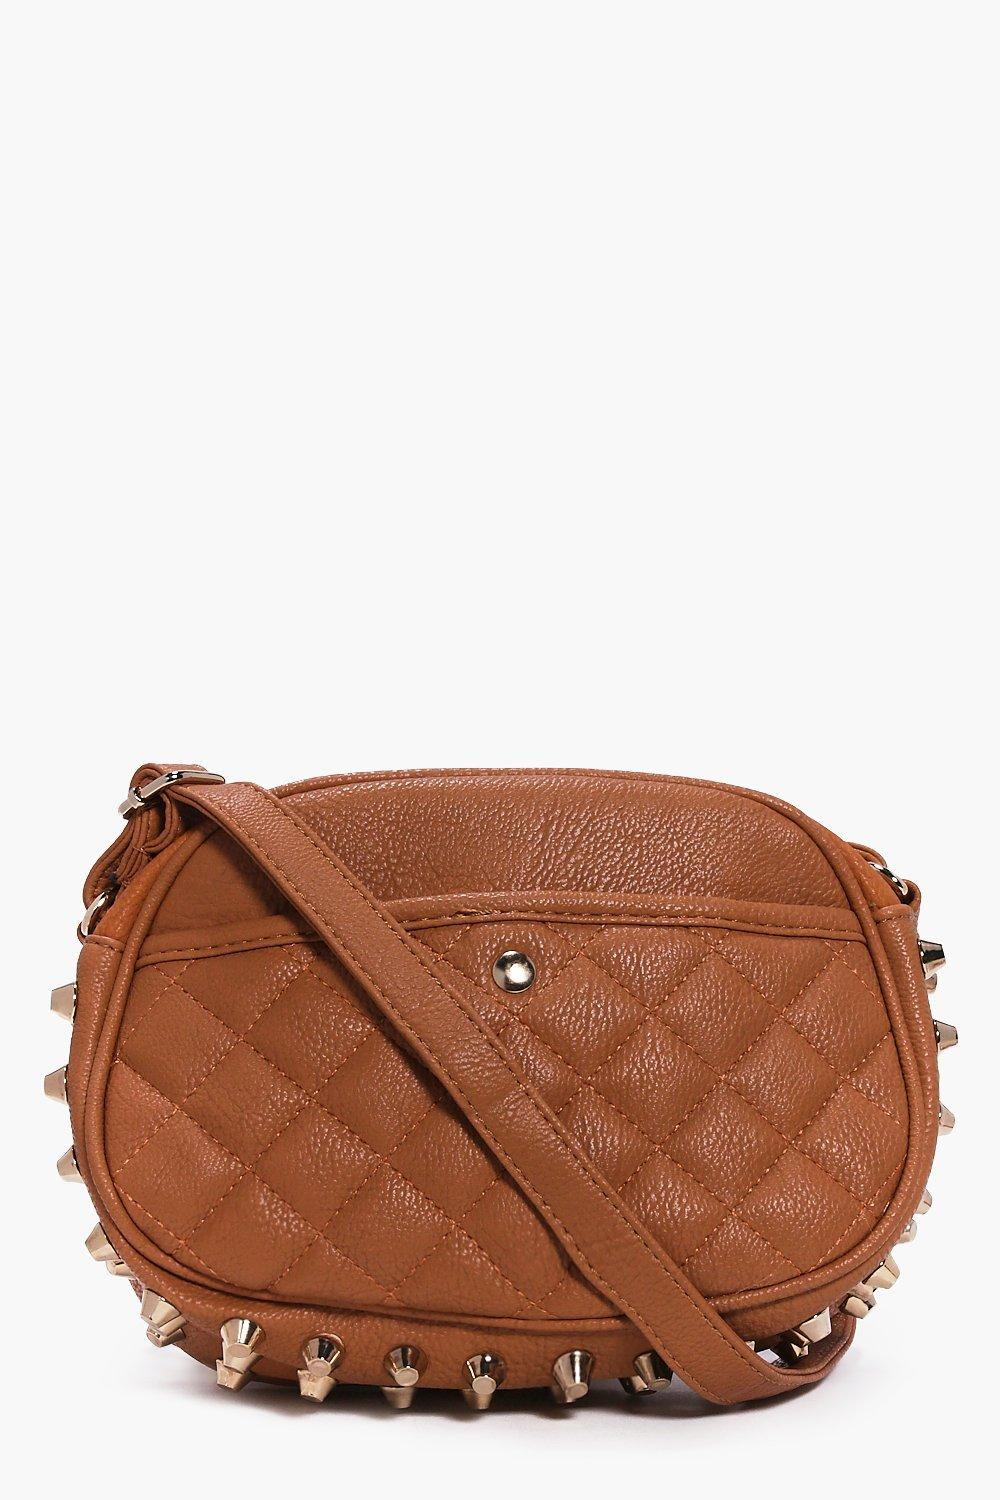 Stud Quilted Body Bag tan